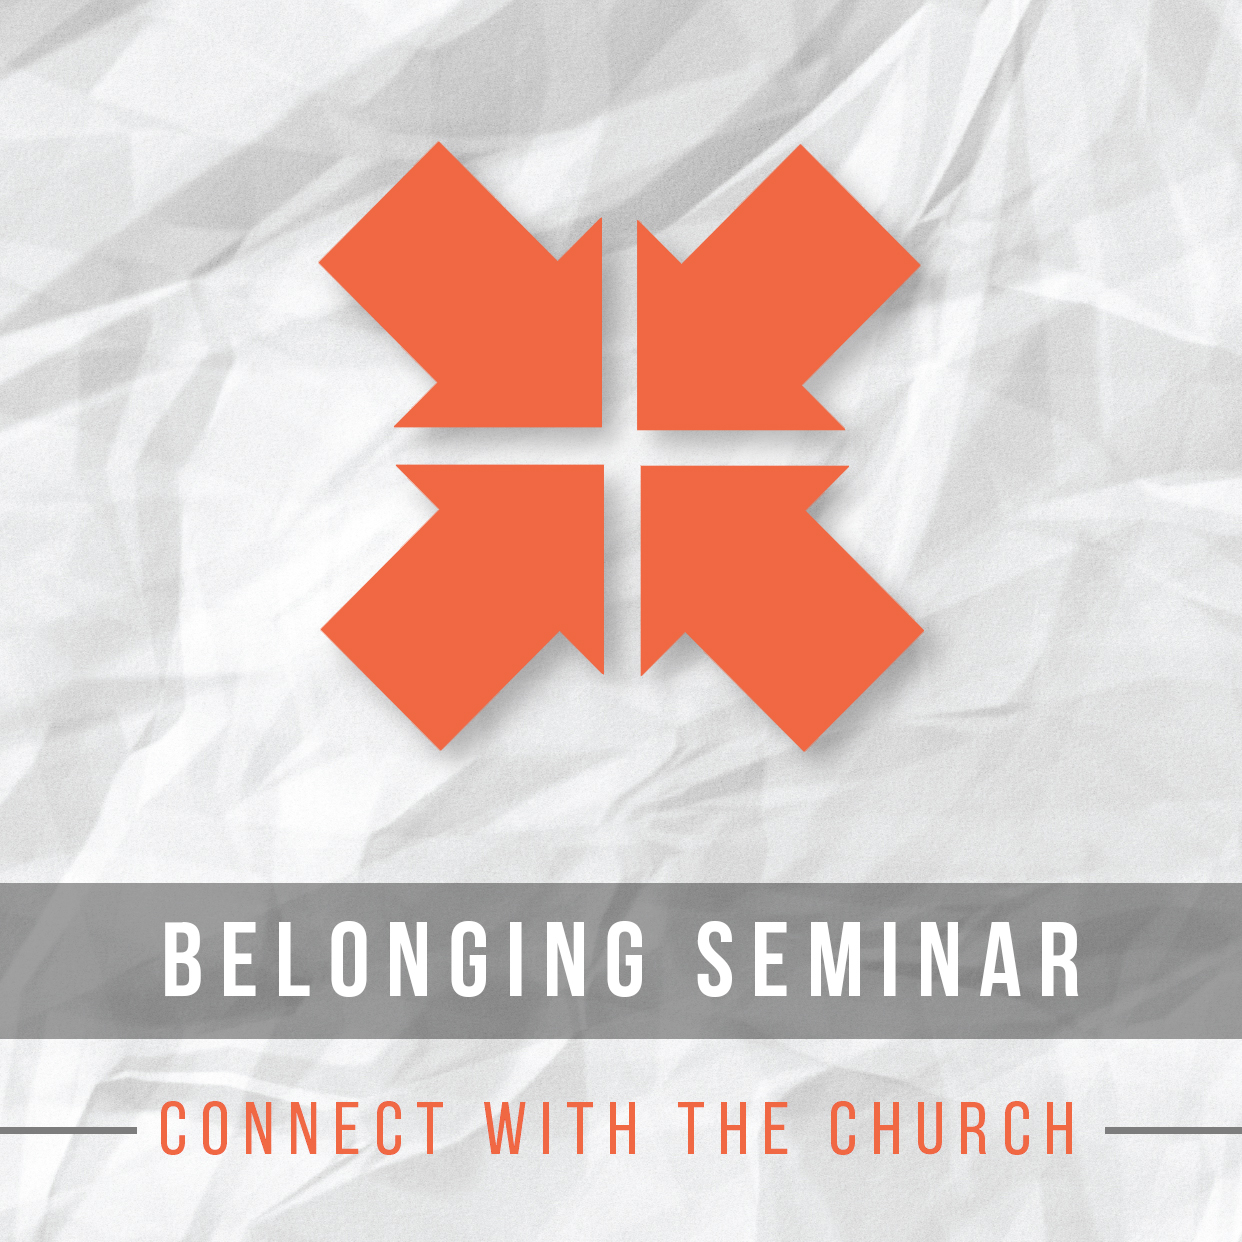 Belonging seminar color corrected